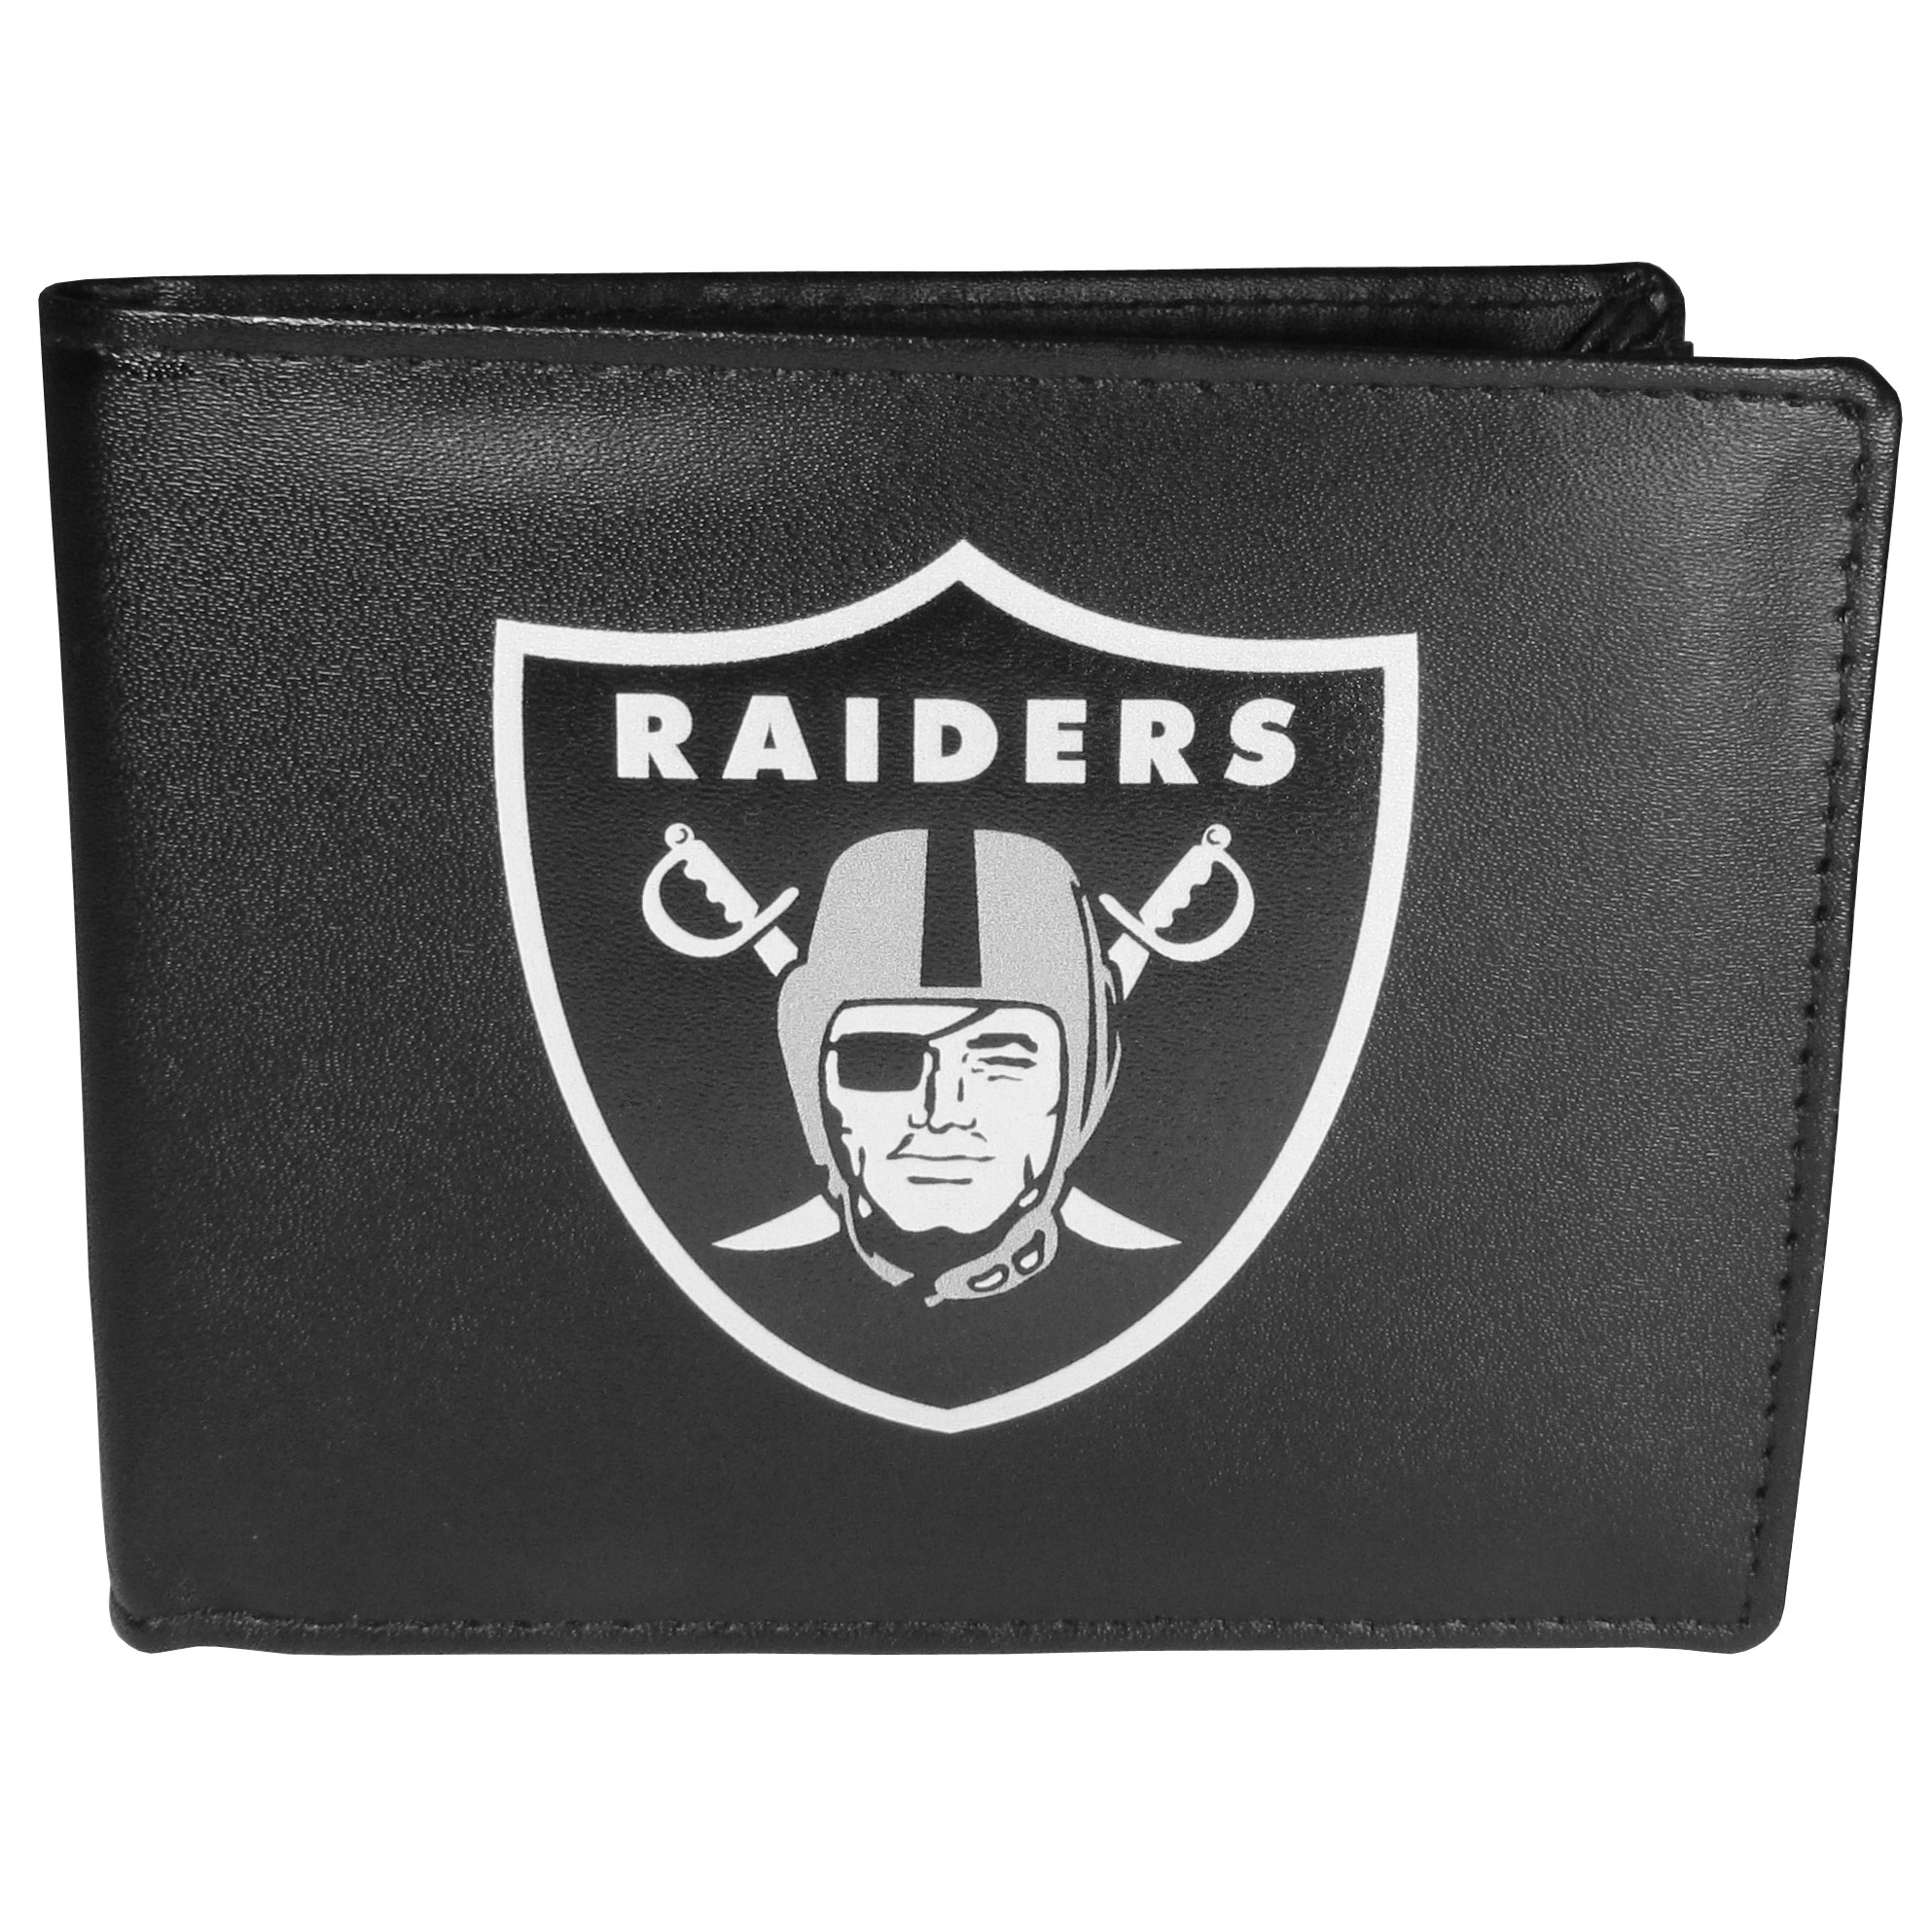 Oakland Raiders Bi-fold Wallet Large Logo - Sports fans do not have to sacrifice style with this classic bi-fold wallet that sports the Oakland Raiders extra large logo. This men's fashion accessory has a leather grain look and expert craftmanship for a quality wallet at a great price. The wallet features inner credit card slots, windowed ID slot and a large billfold pocket. The front of the wallet features a printed team logo.